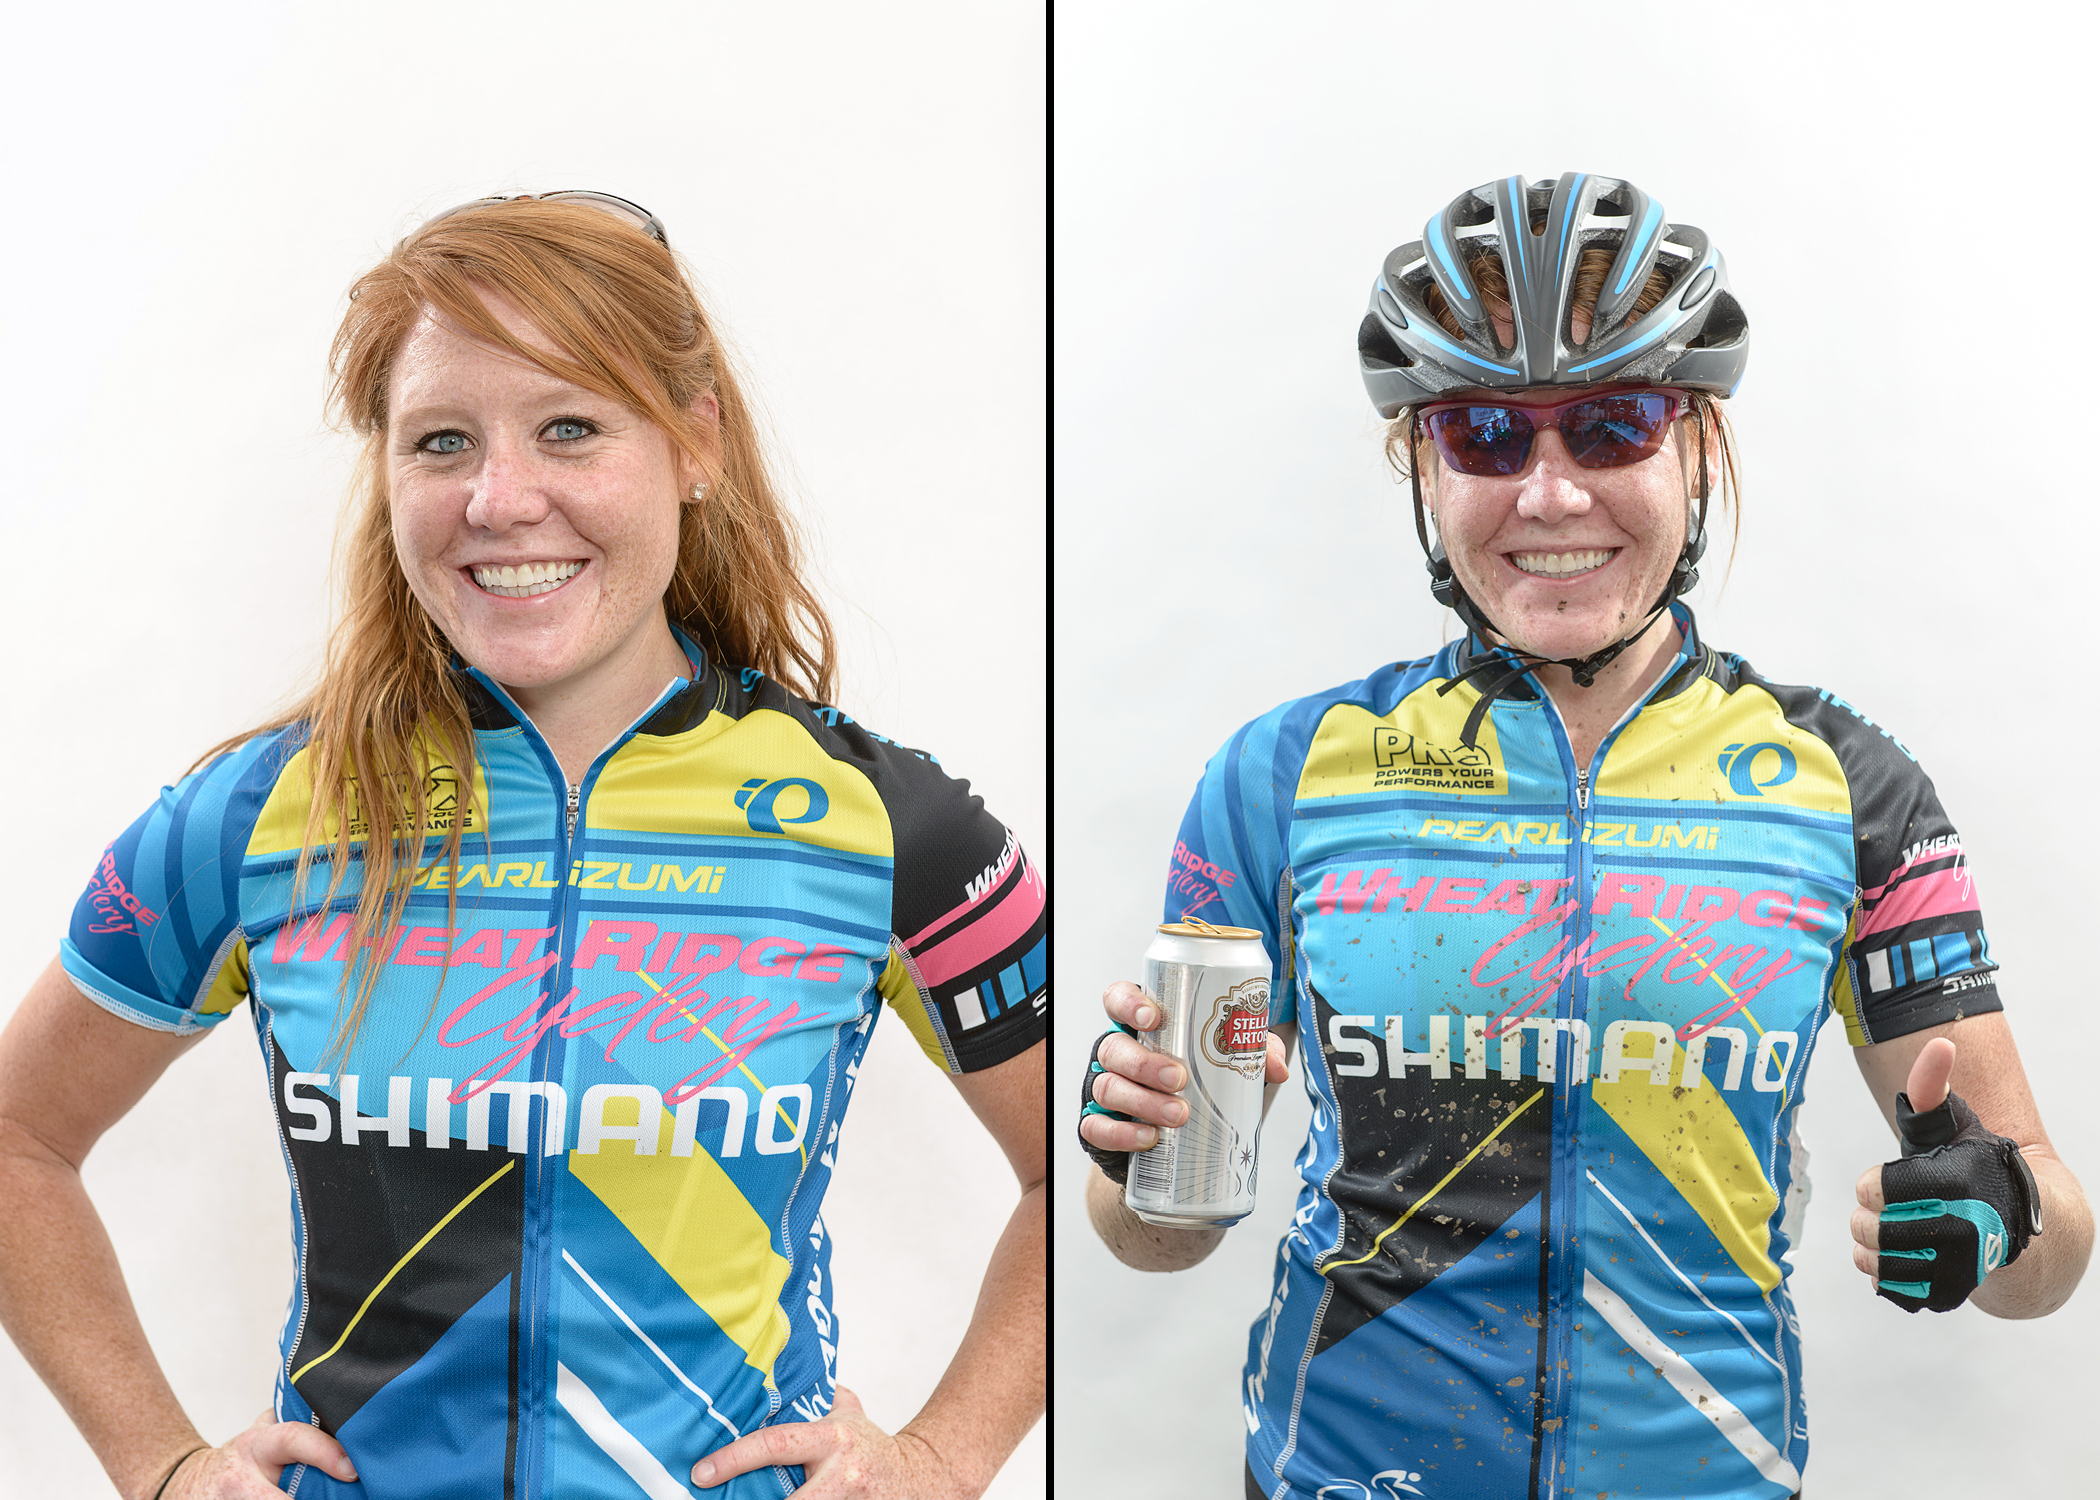 Wheat Ridge 'Cross Team Racer. Before. After.  From the Before. After. Photo Booth.